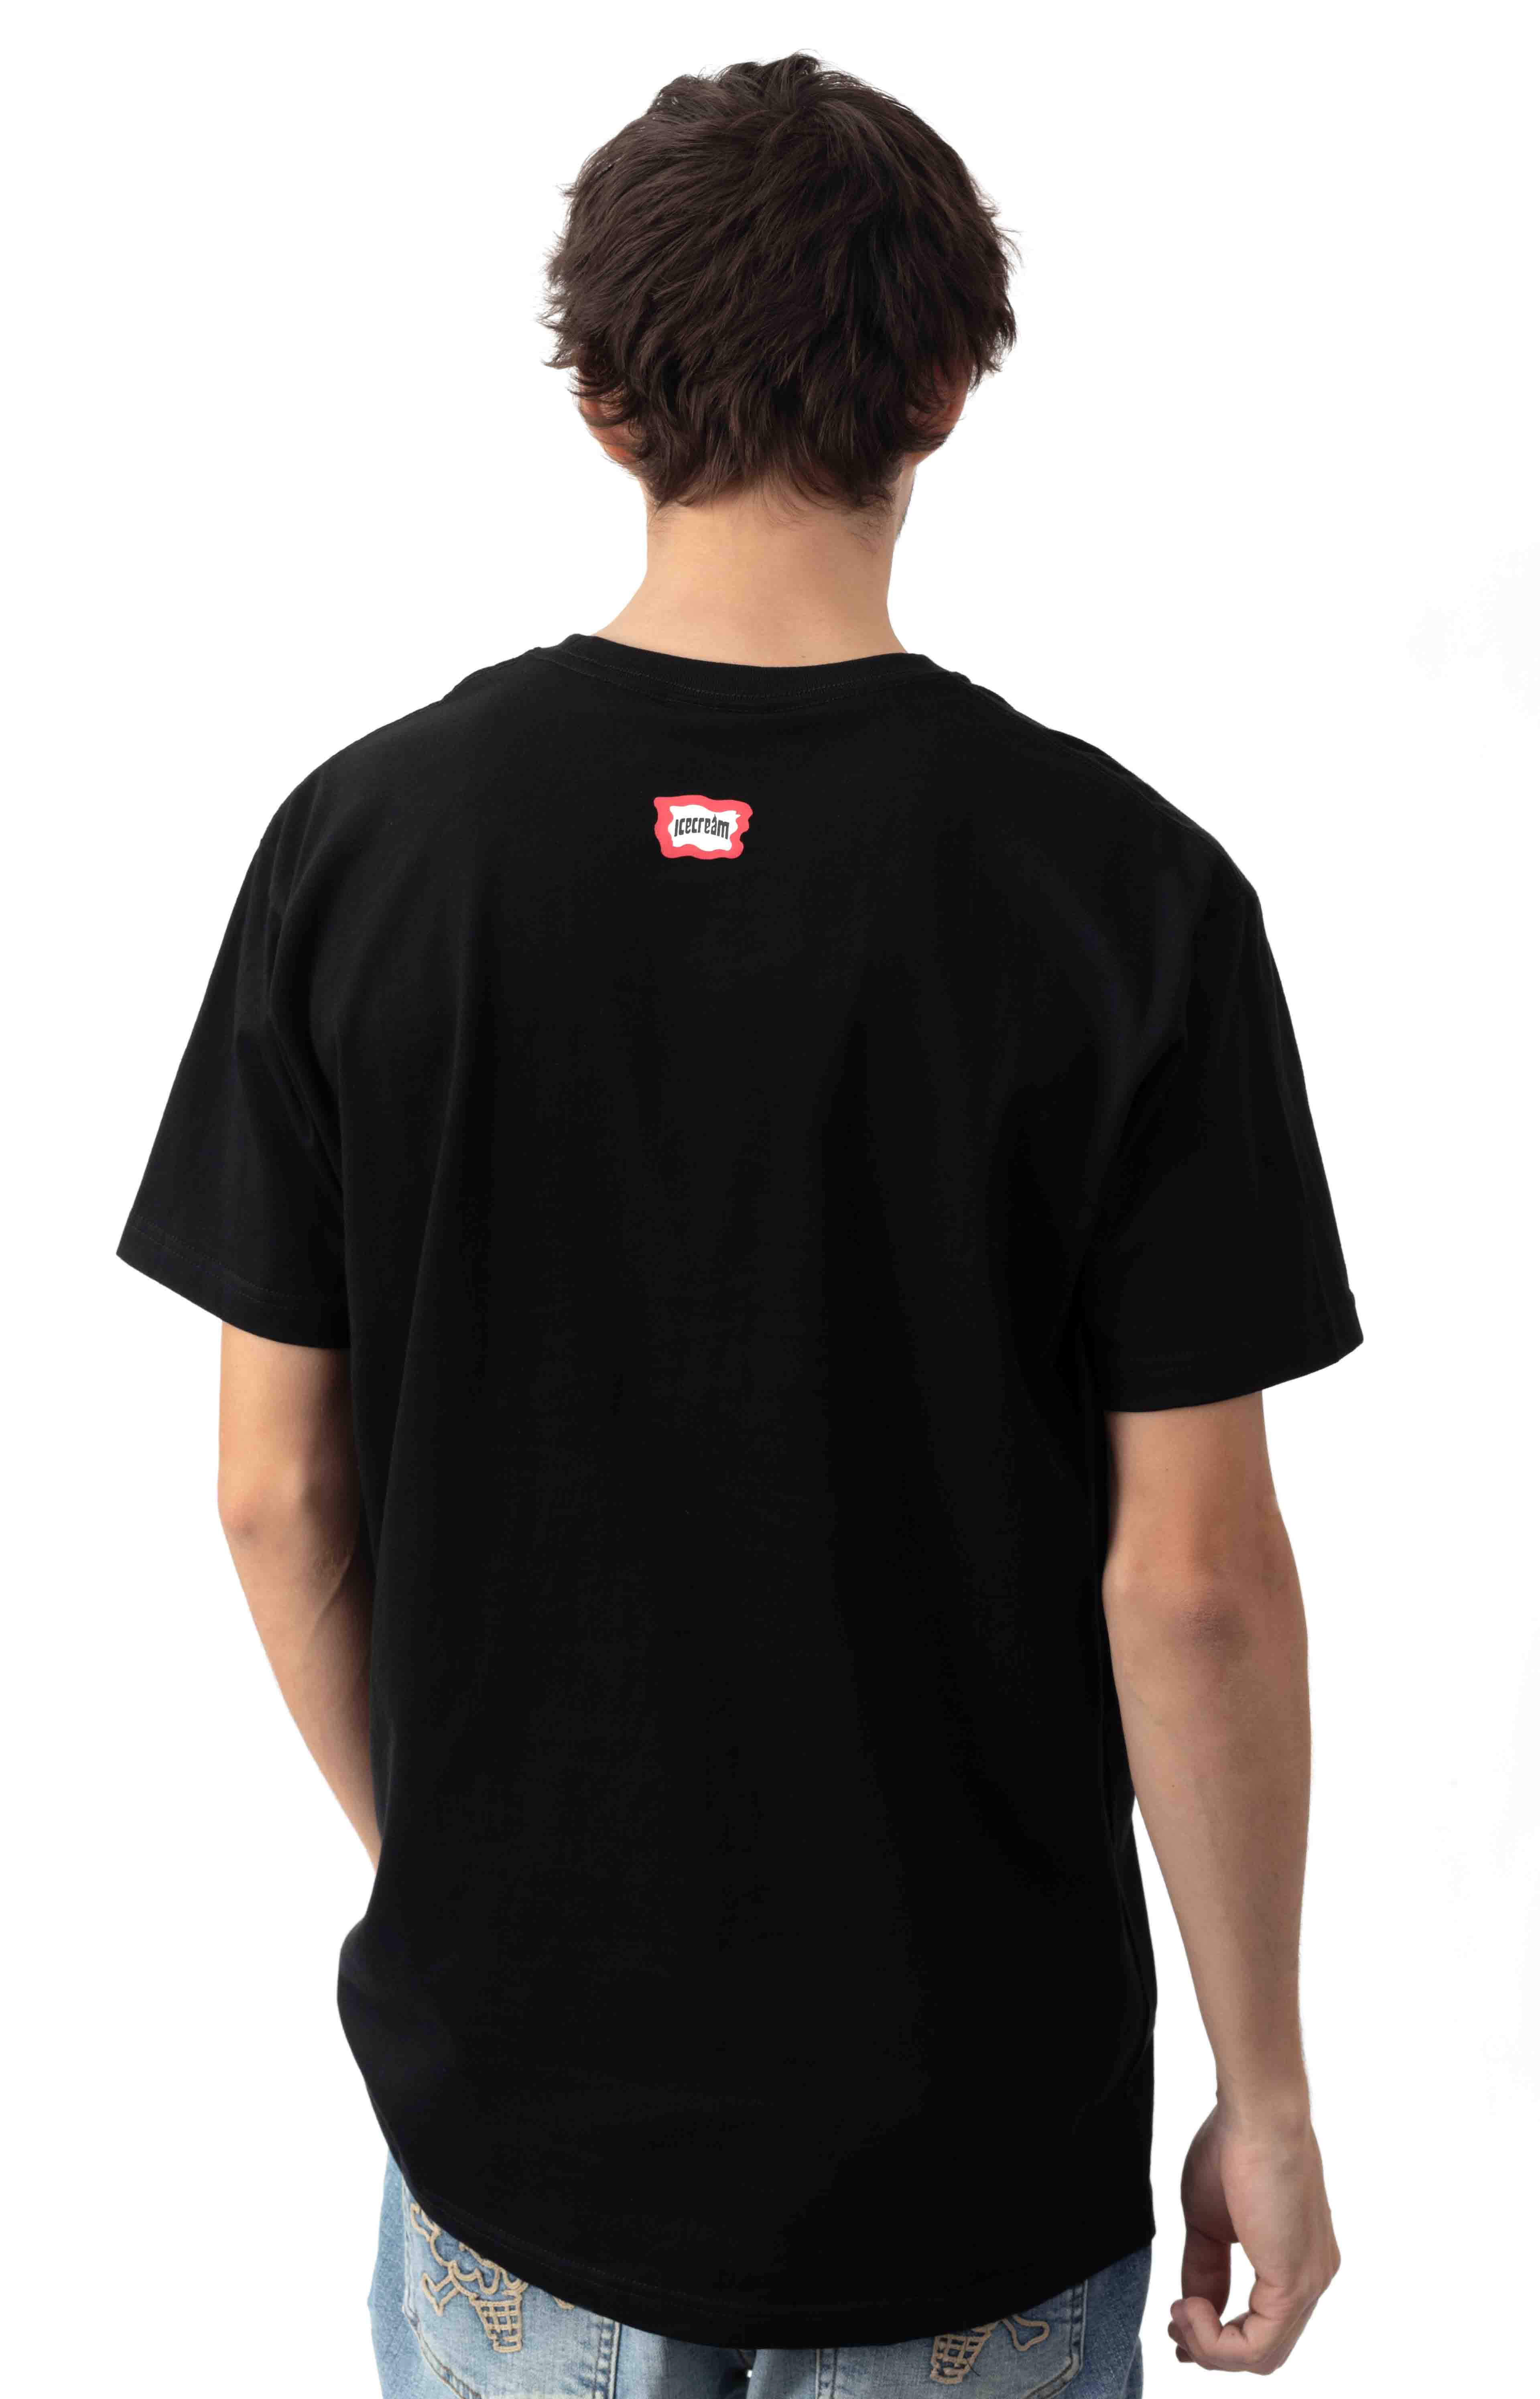 Wasted T-Shirt - Black 3